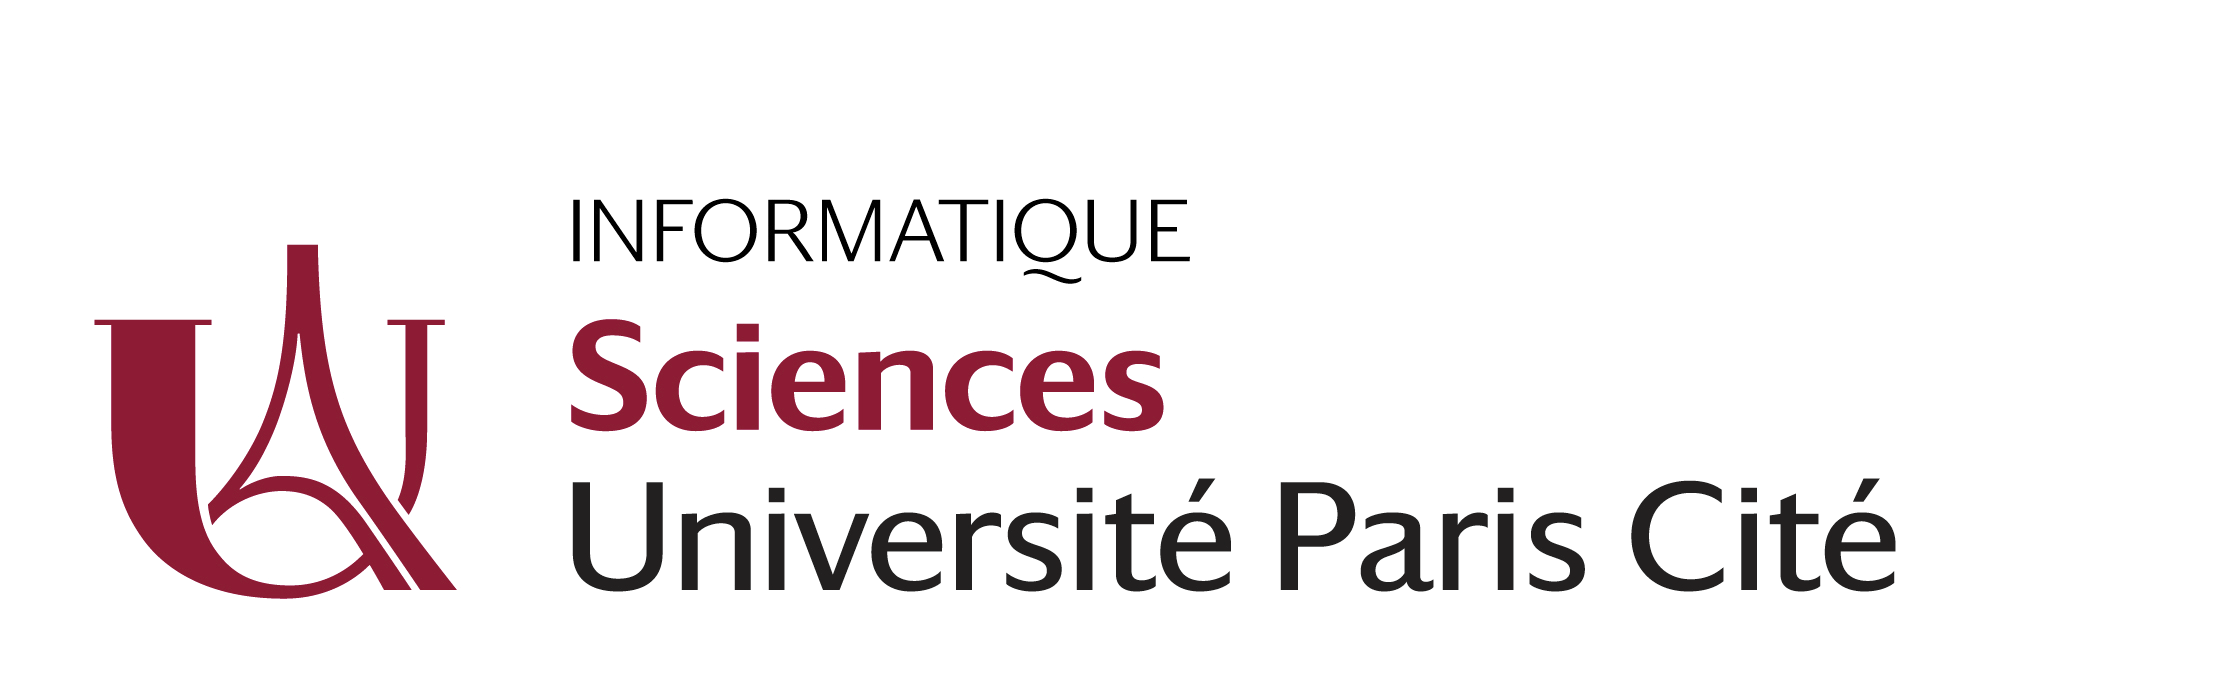 UFR Informatique